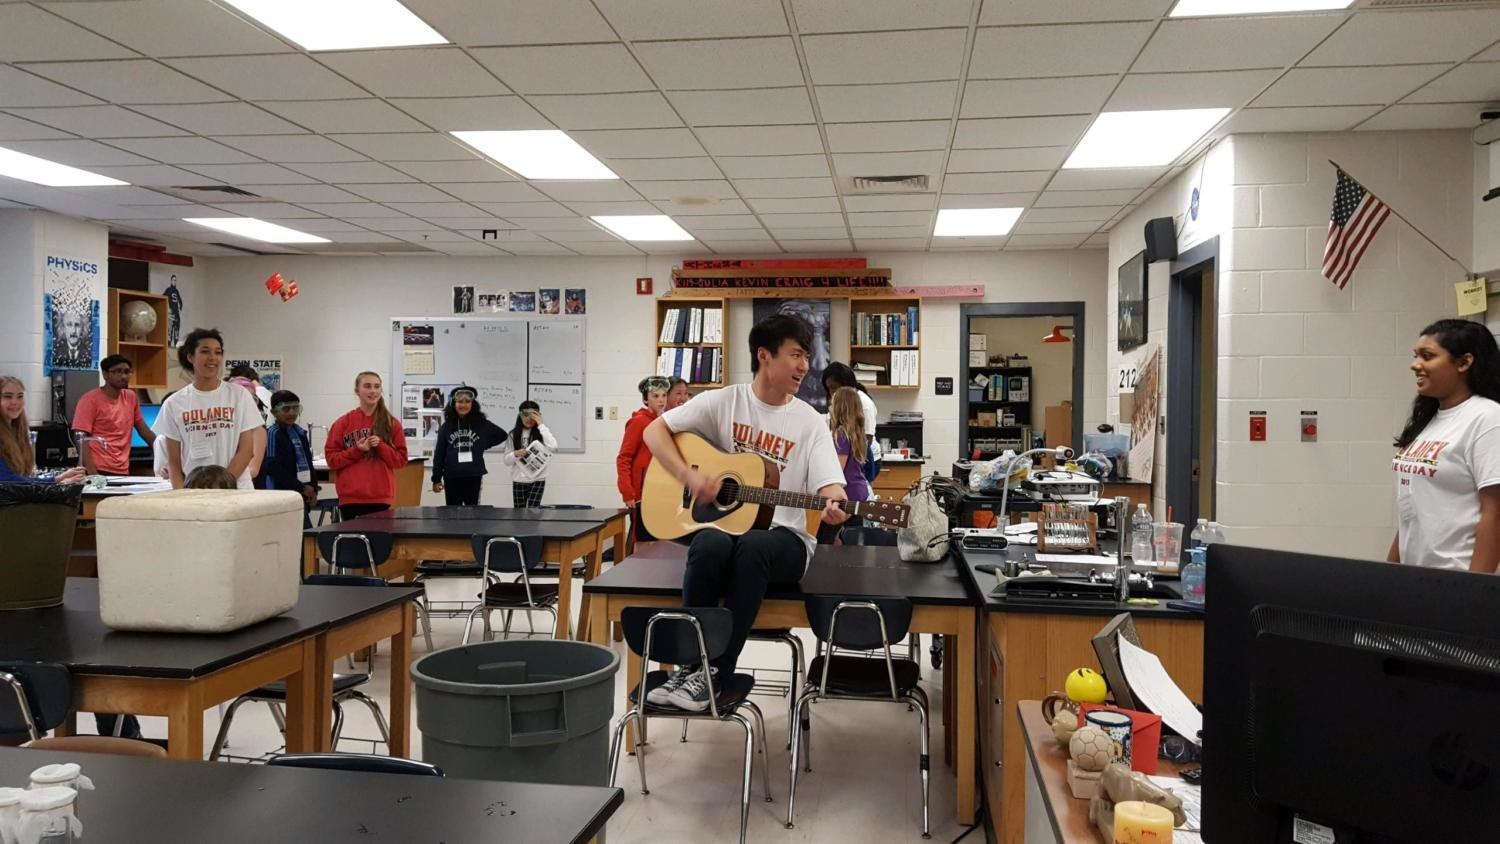 Senior+Michael+Cheng+performs+a+song+about+DNA+on+his+guitar+for+elementary+school+students+in+room+214.